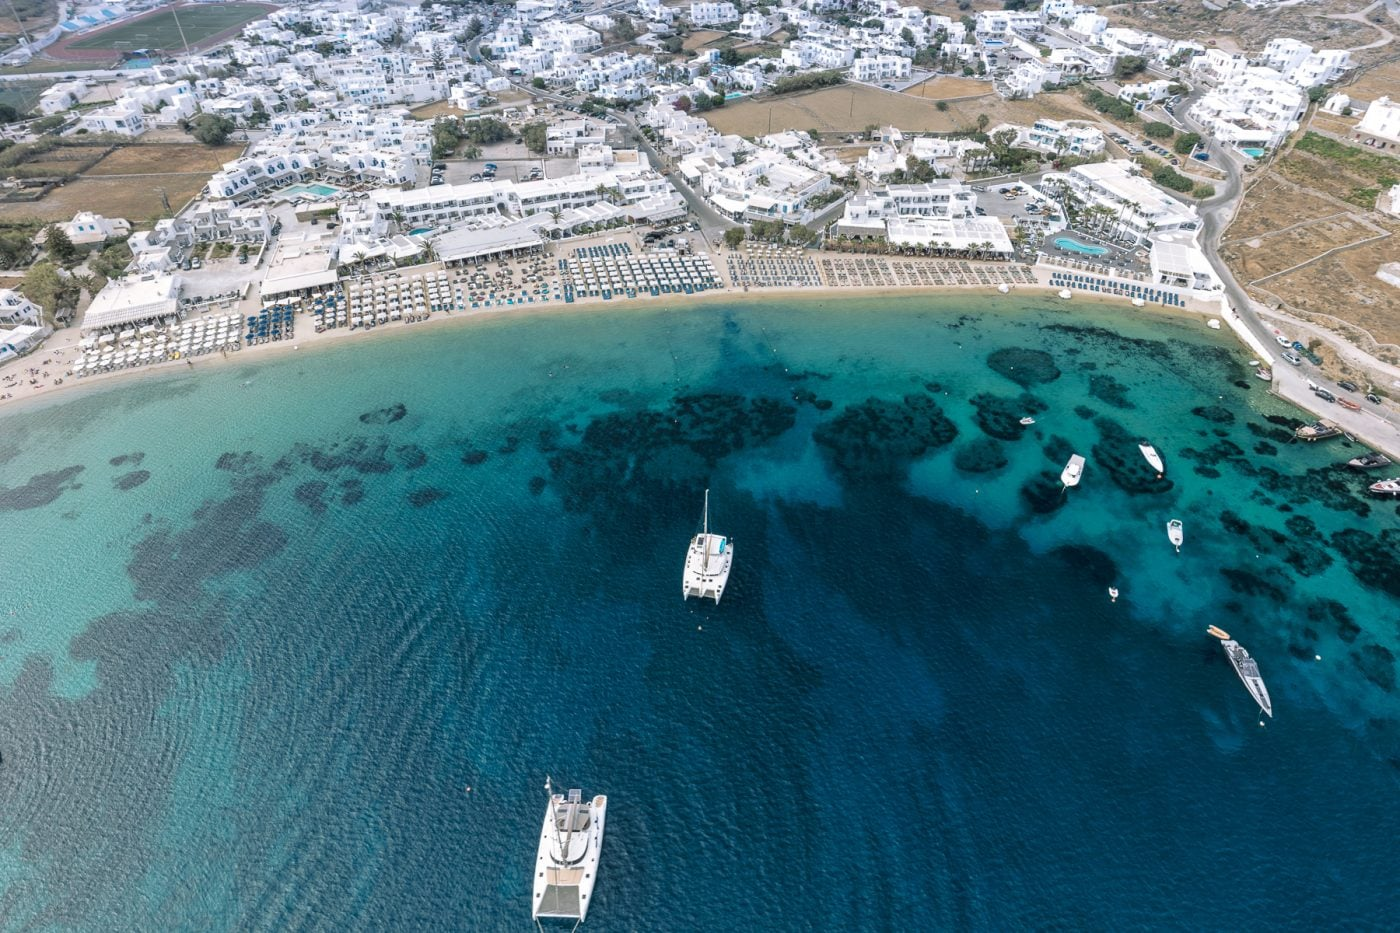 View of the Ornos bay in Mykonos as seen by a drone. Crystal clear sea and white coloured houses.